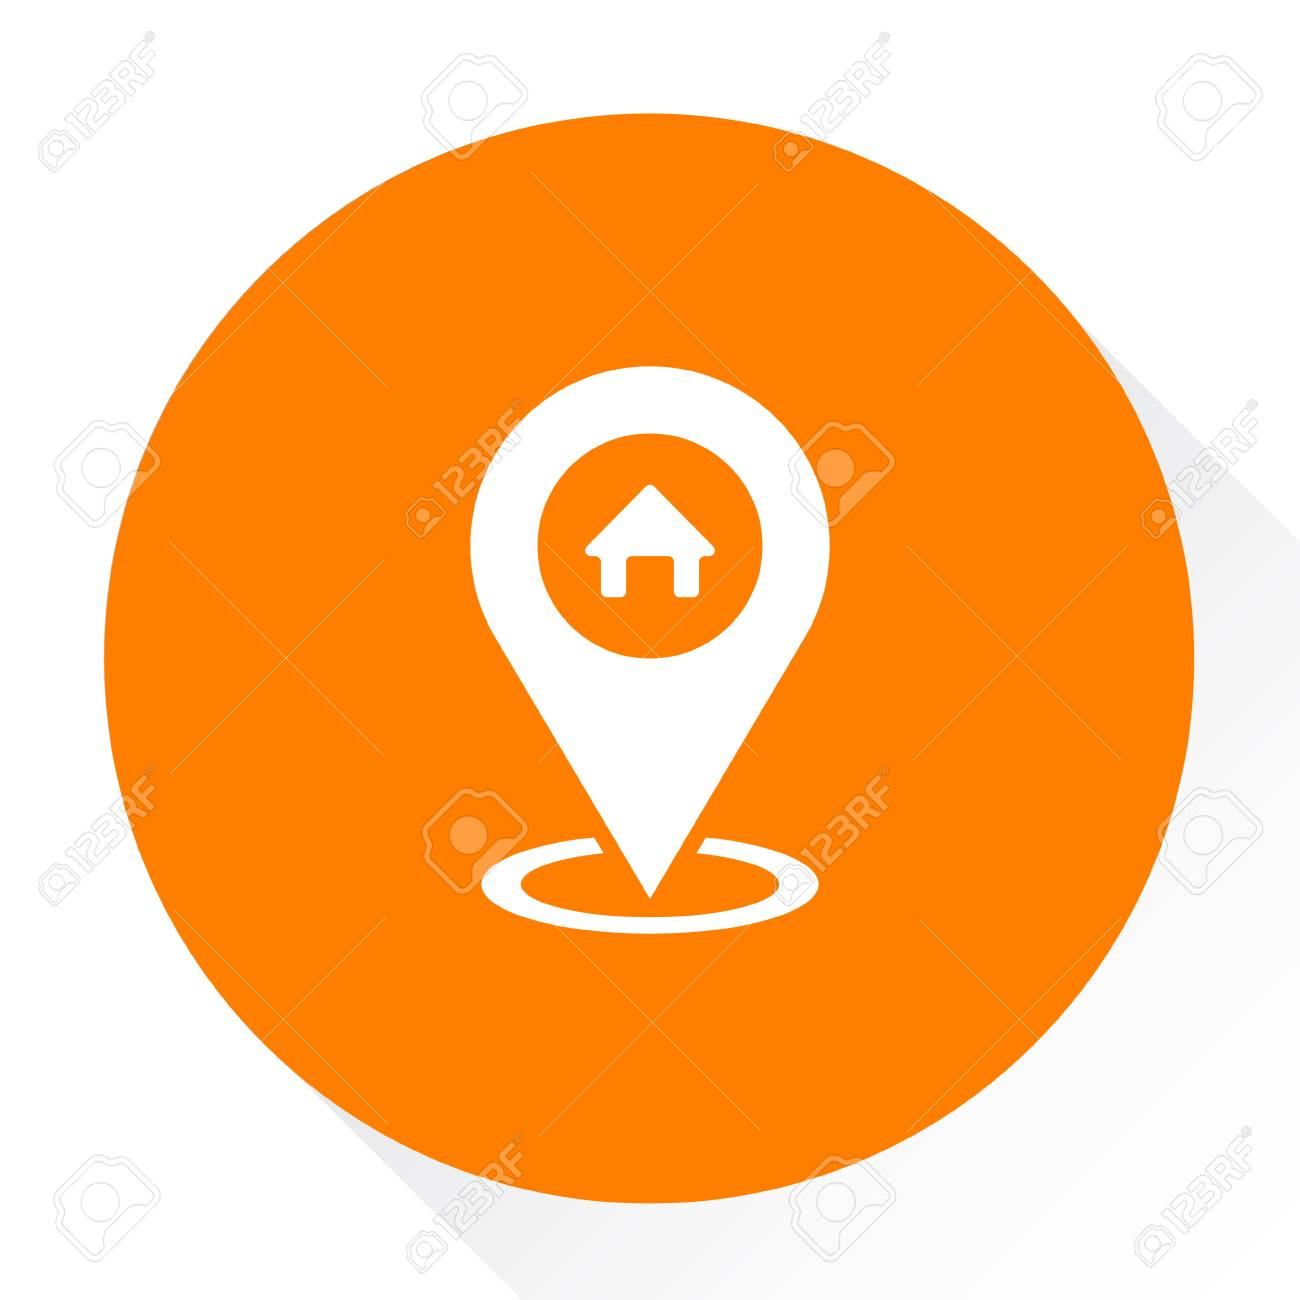 home gps icon royalty free cliparts vectors and stock illustration